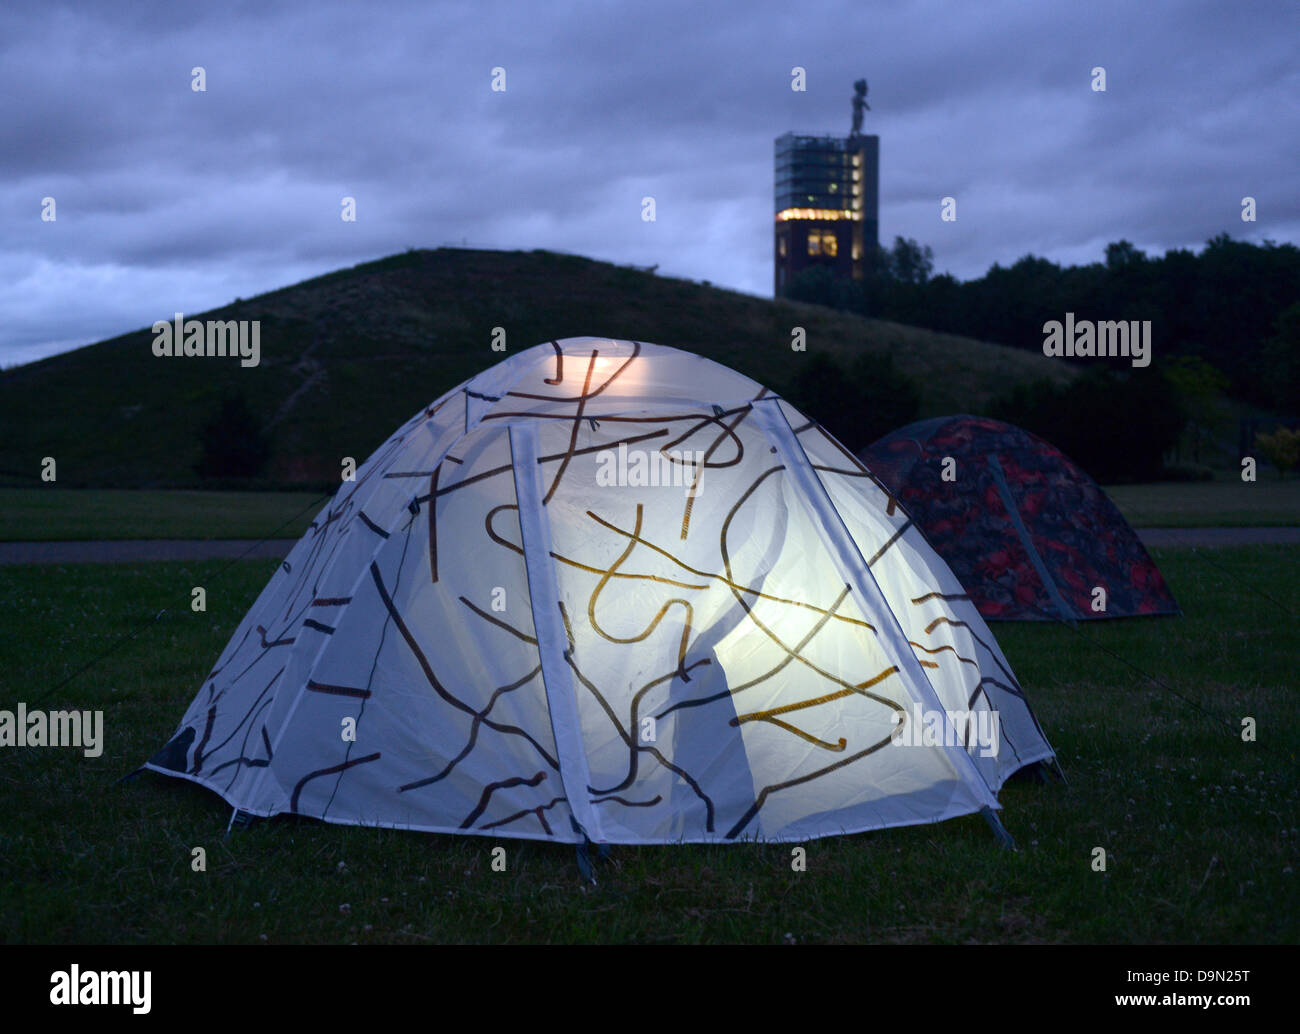 Tents designed by Chinese artist Ai Weiwei are set up during the u0027Emscherkunst 2013u0027 & Tents designed by Chinese artist Ai Weiwei are set up during the ...